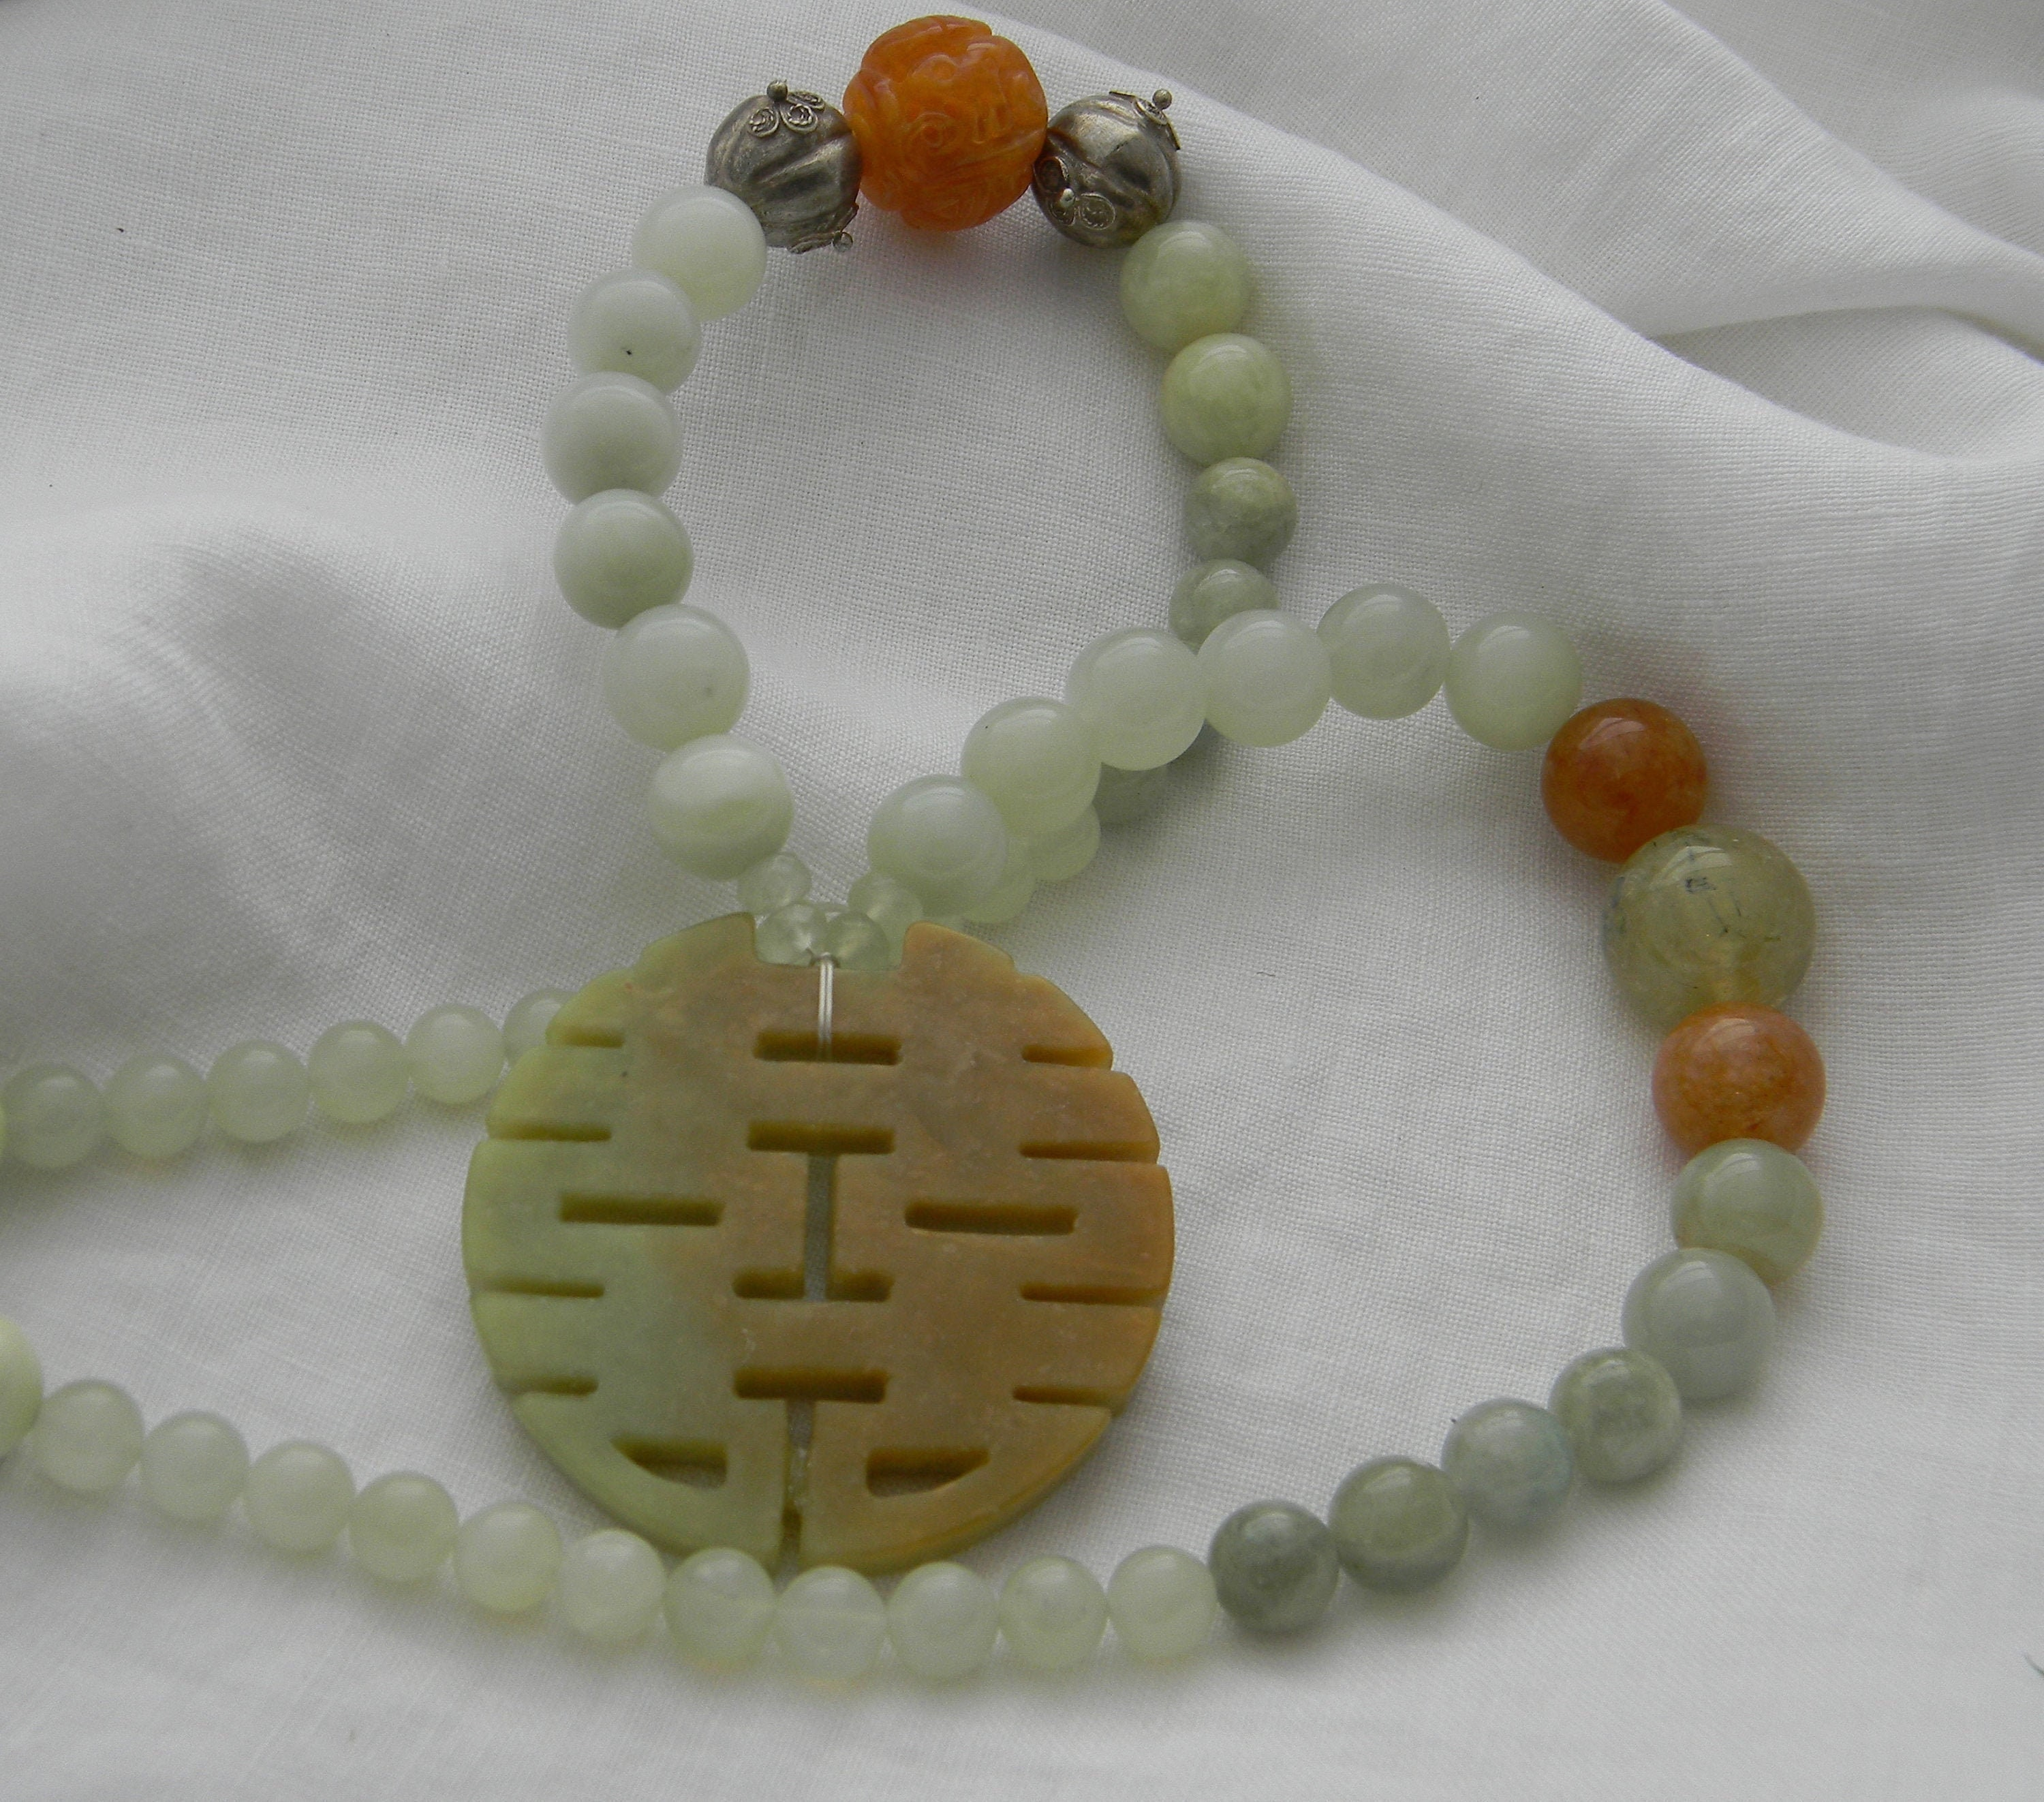 Asian Chinese Style Necklace Unique Apricot Faceted Agate Beads WHITE JADE DRAGON Pendant One of a Kind. Carnelian Beads